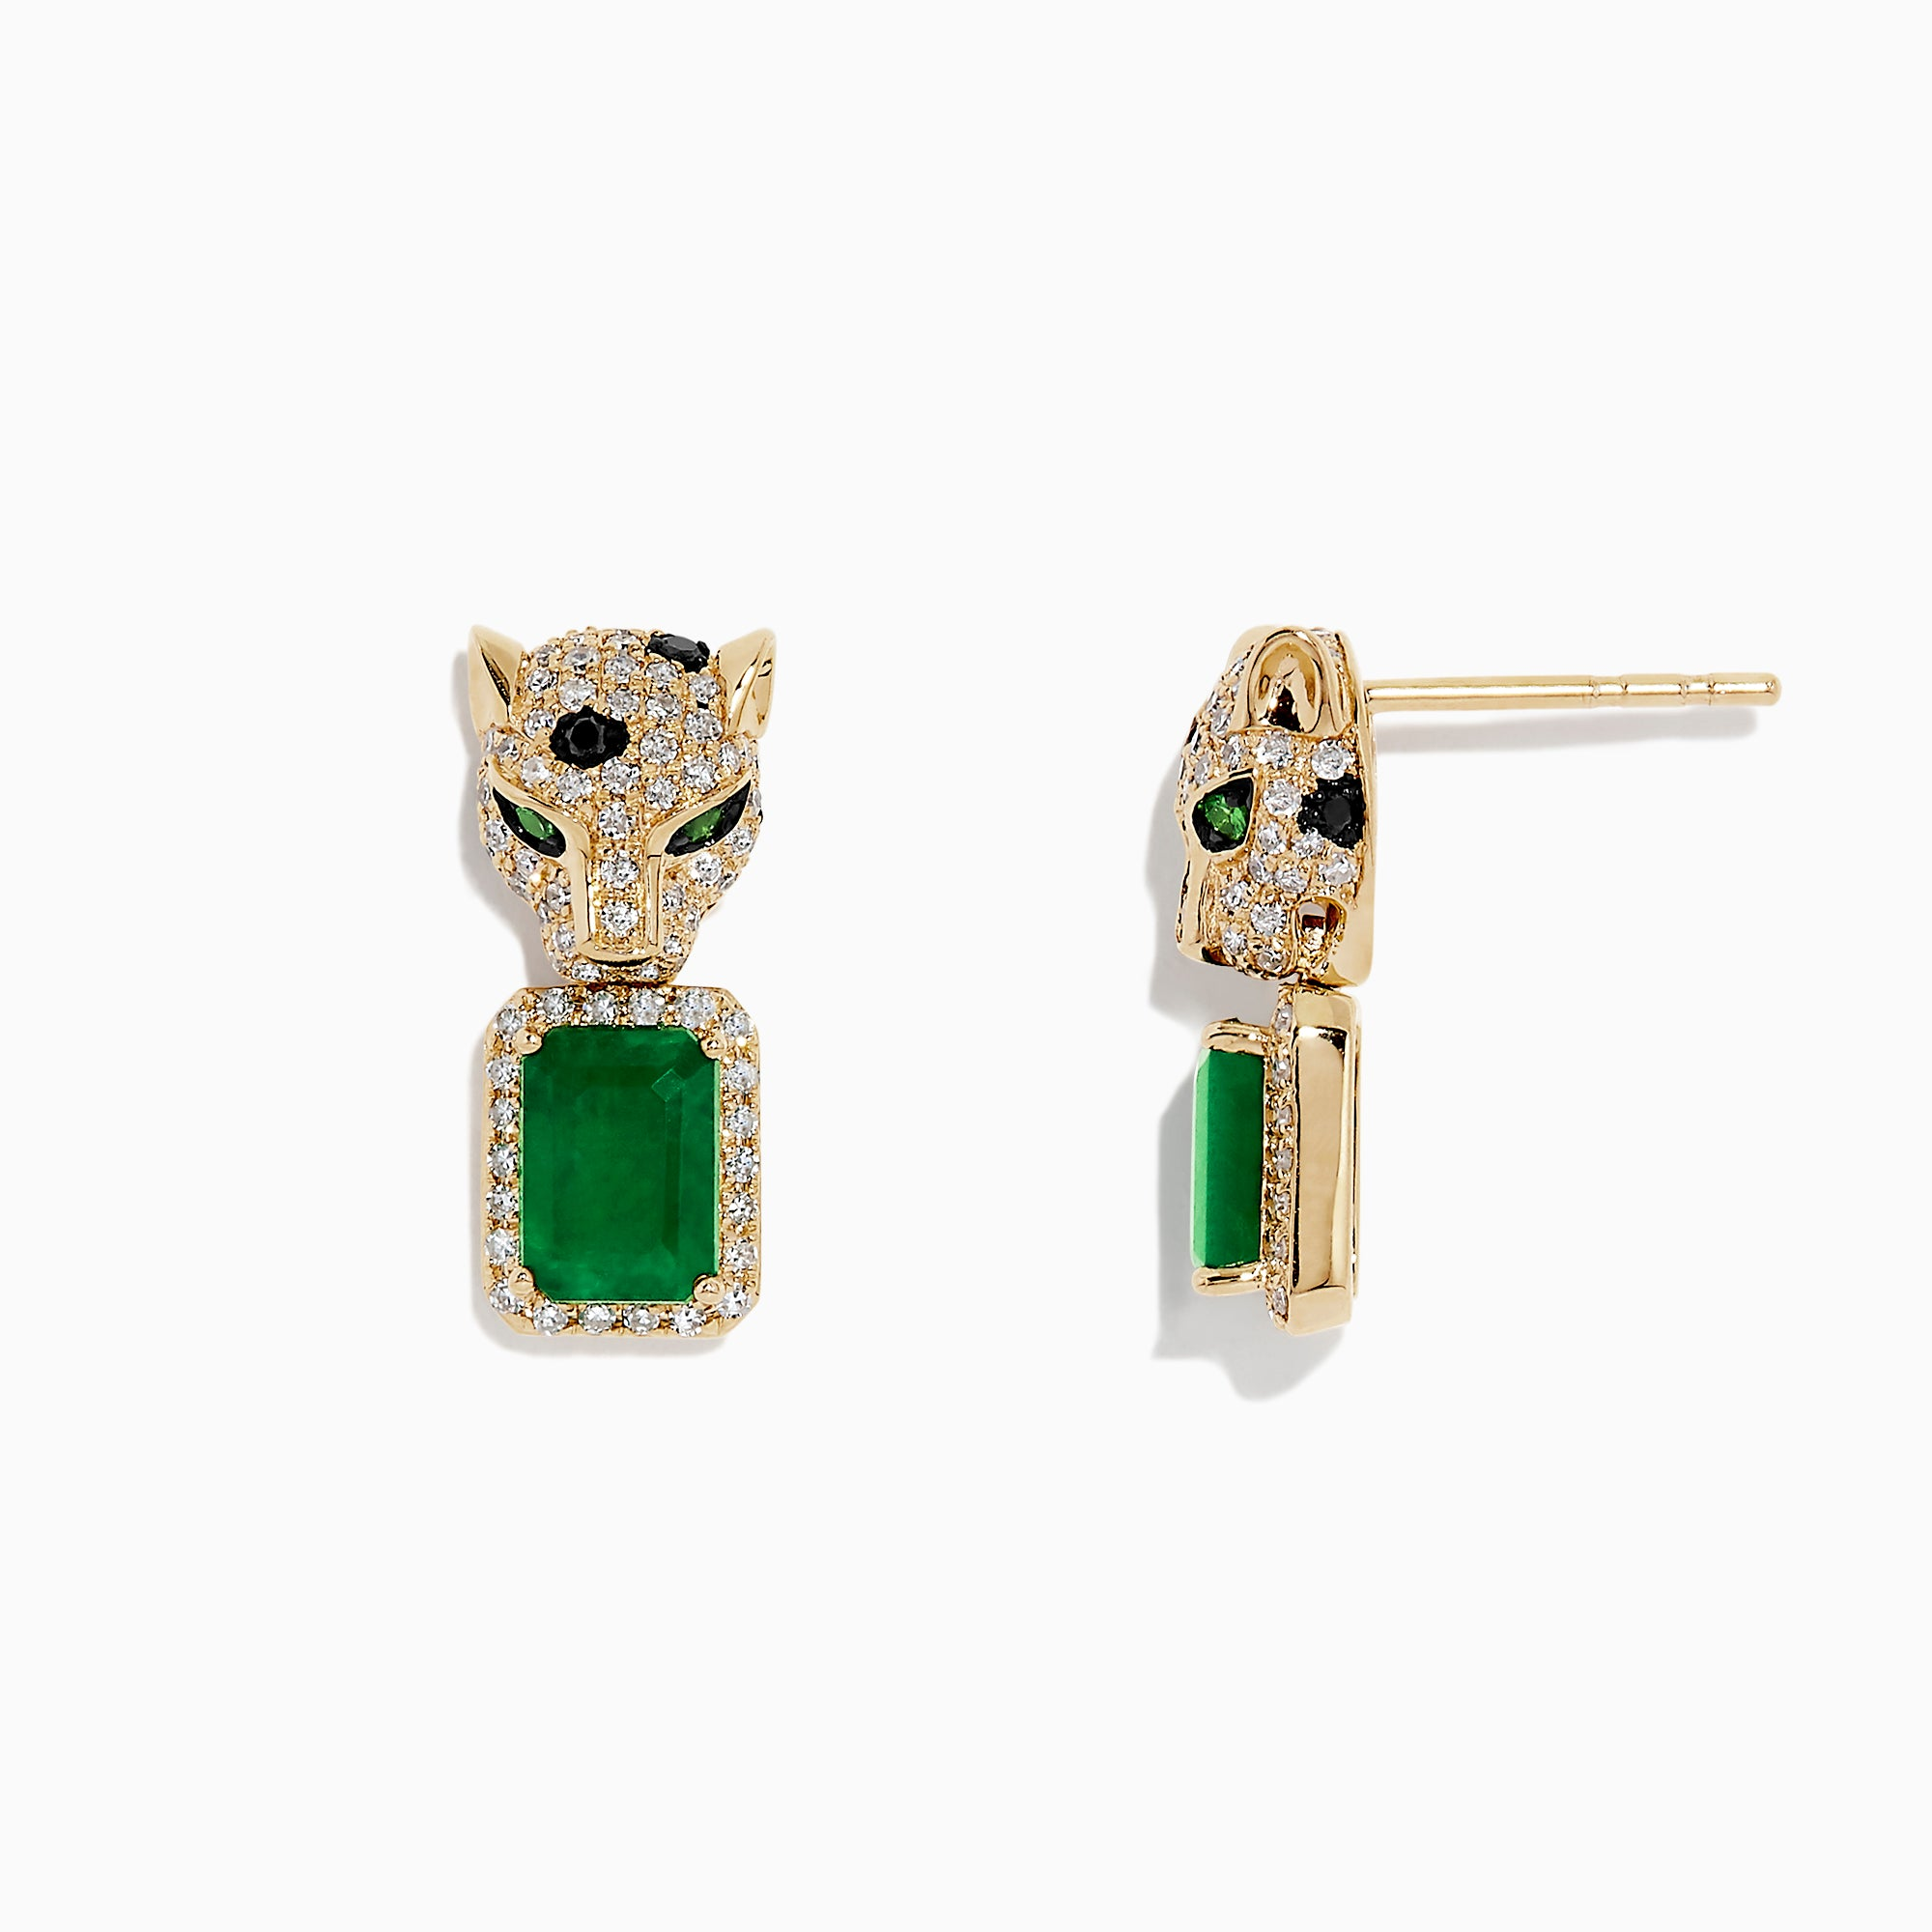 Effy Signature 14K Yellow Gold Diamond and Emerald Earrings, 2.58 TCW